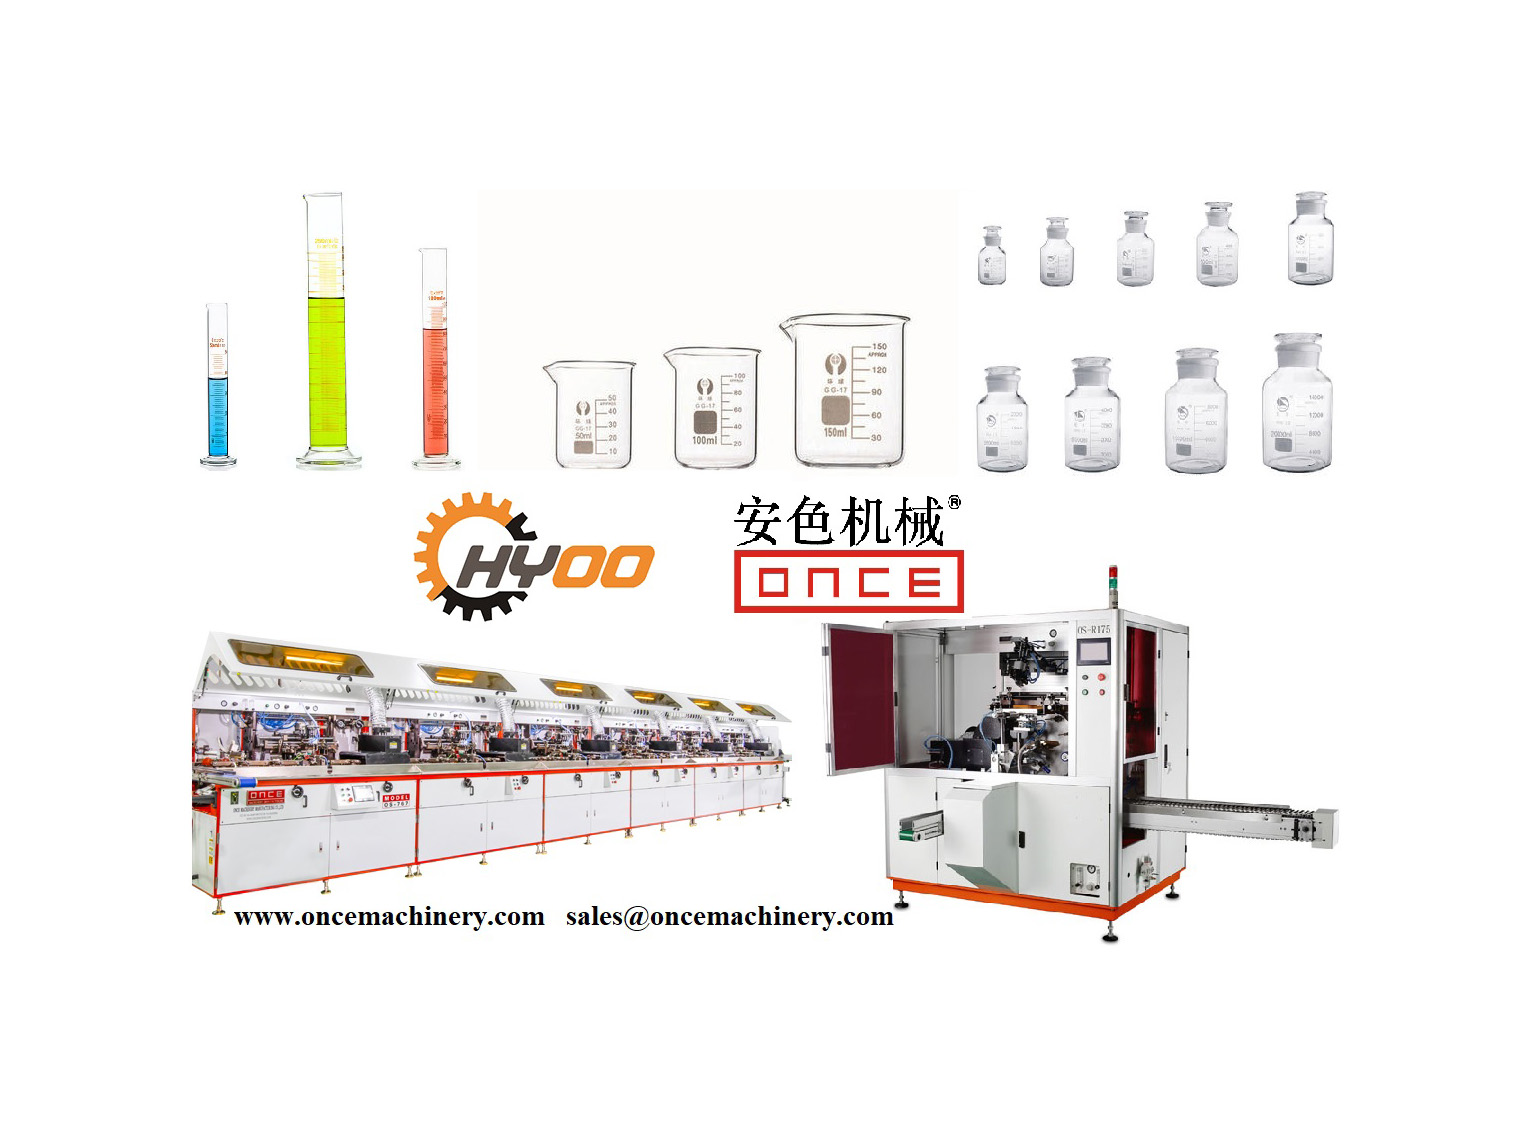 Huayu Automation - Screen Printing Machines for Medical Measuring Cup, Sample Bottle, Syringe